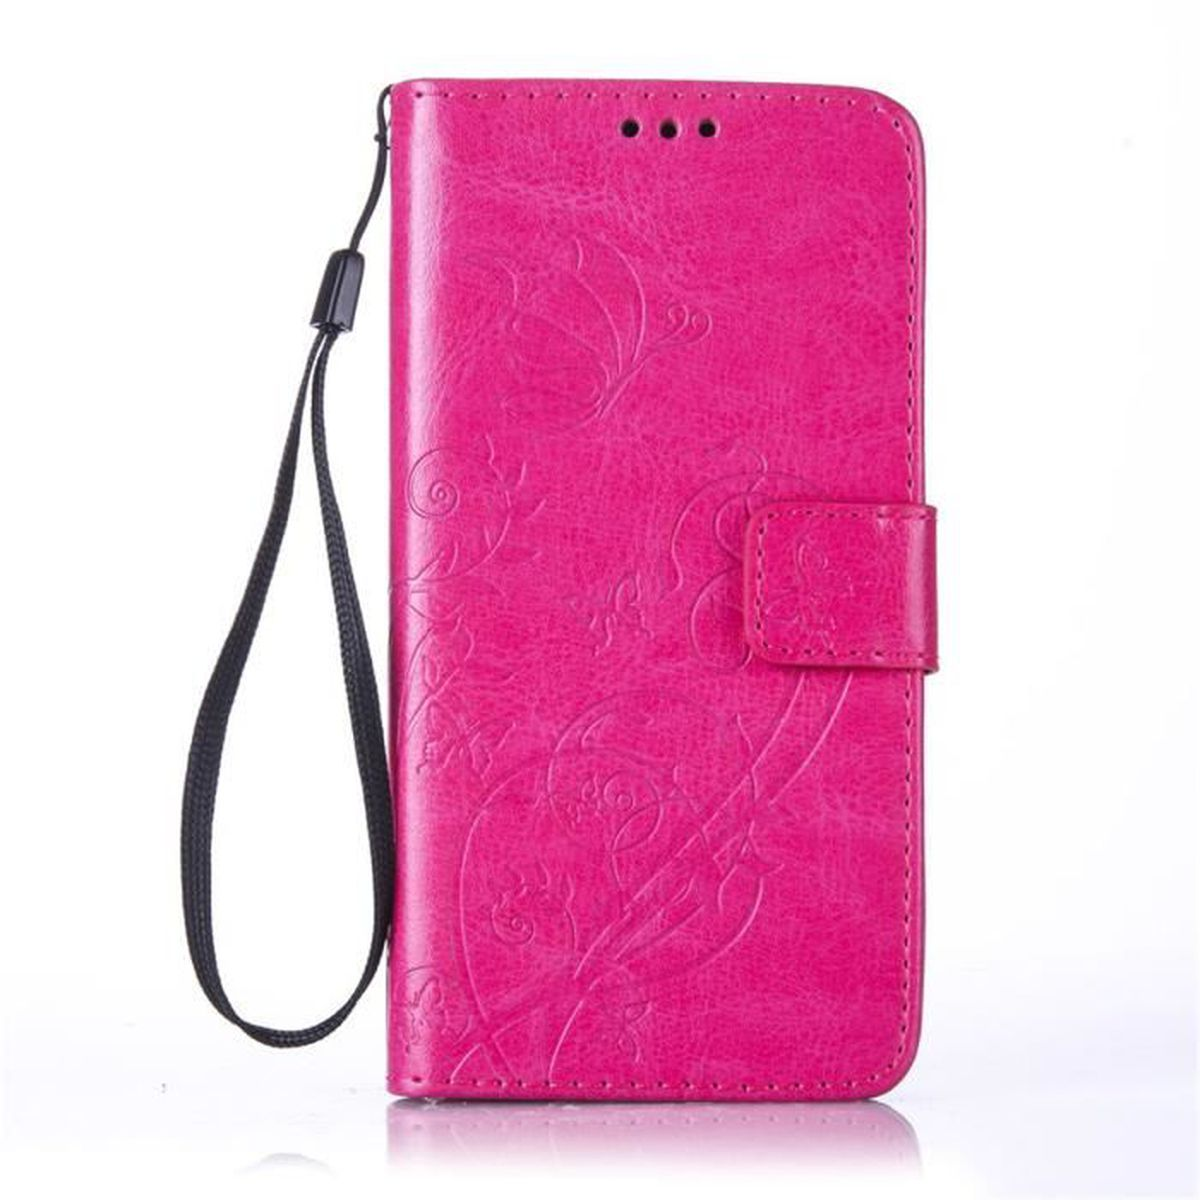 Wiko lenny 3 coque pu cuir pochette antichoc avce for Wiko lenny 3 housse